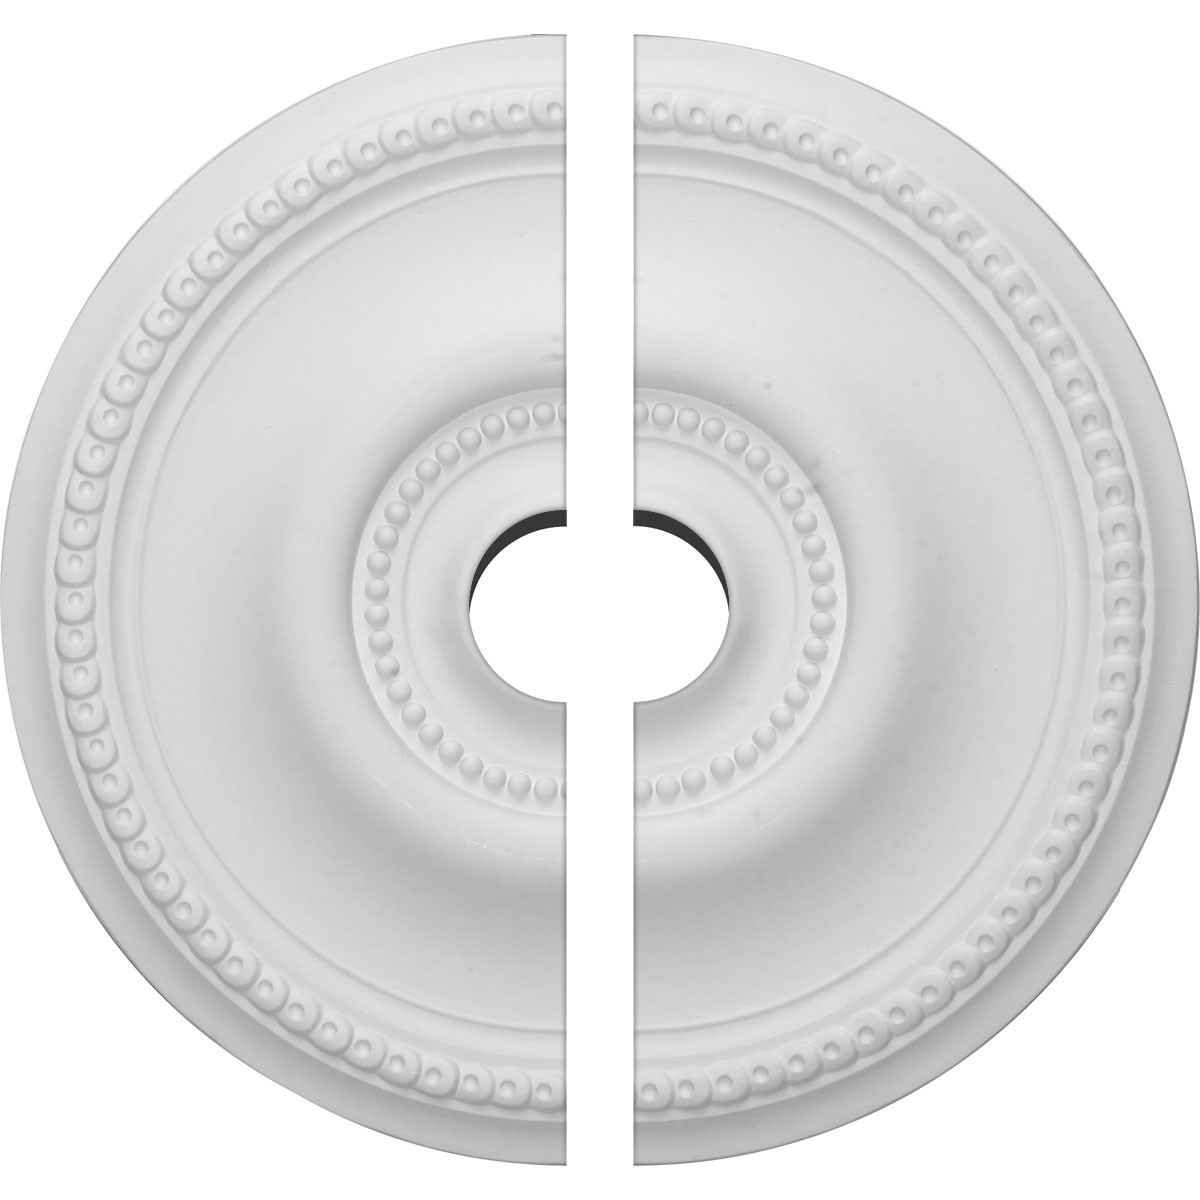 """EM-CM20BE2-03500 - 20 5/8""""OD x 3 1/2""""ID x 1 3/8""""P Raynor Ceiling Medallion, Two Piece (Fits Canopies up to 6"""")"""